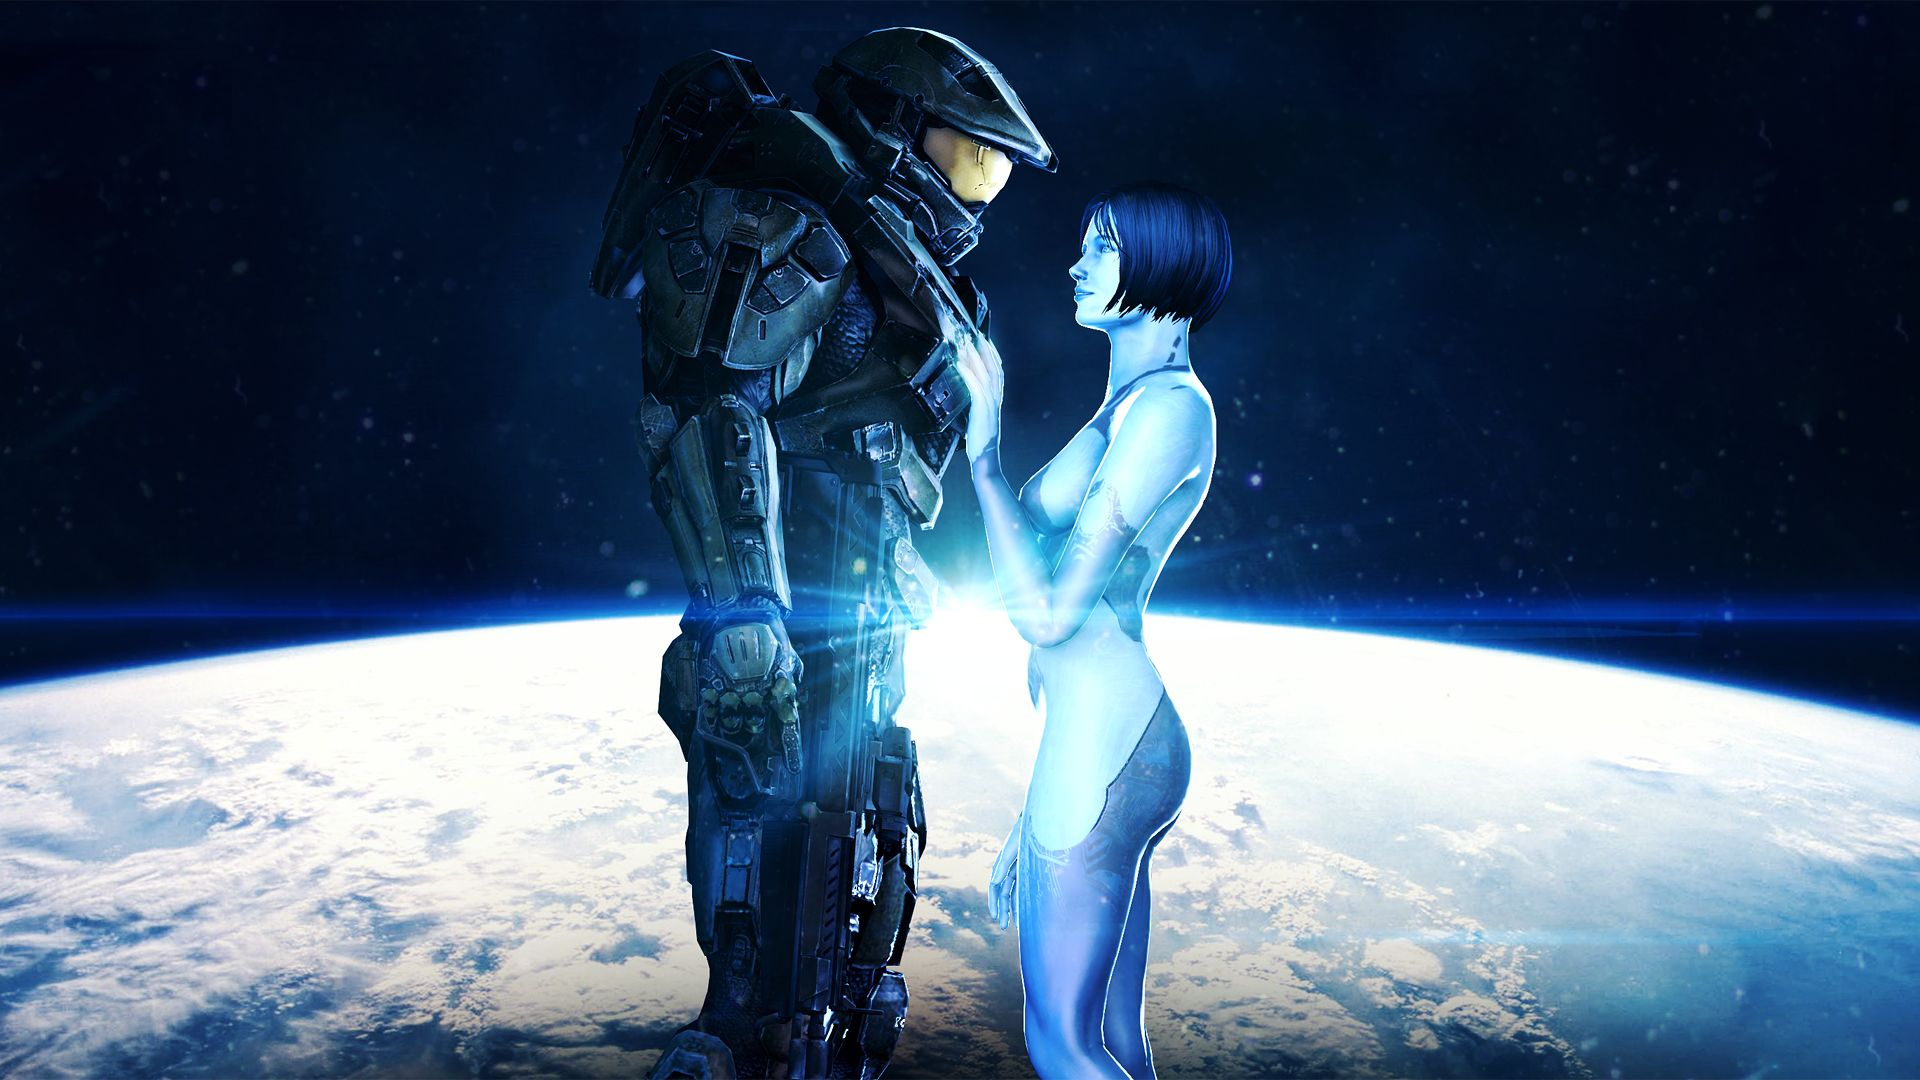 halo-6-to-be-a-more-human-co-op-story-for-master-chief-halo-4-811675